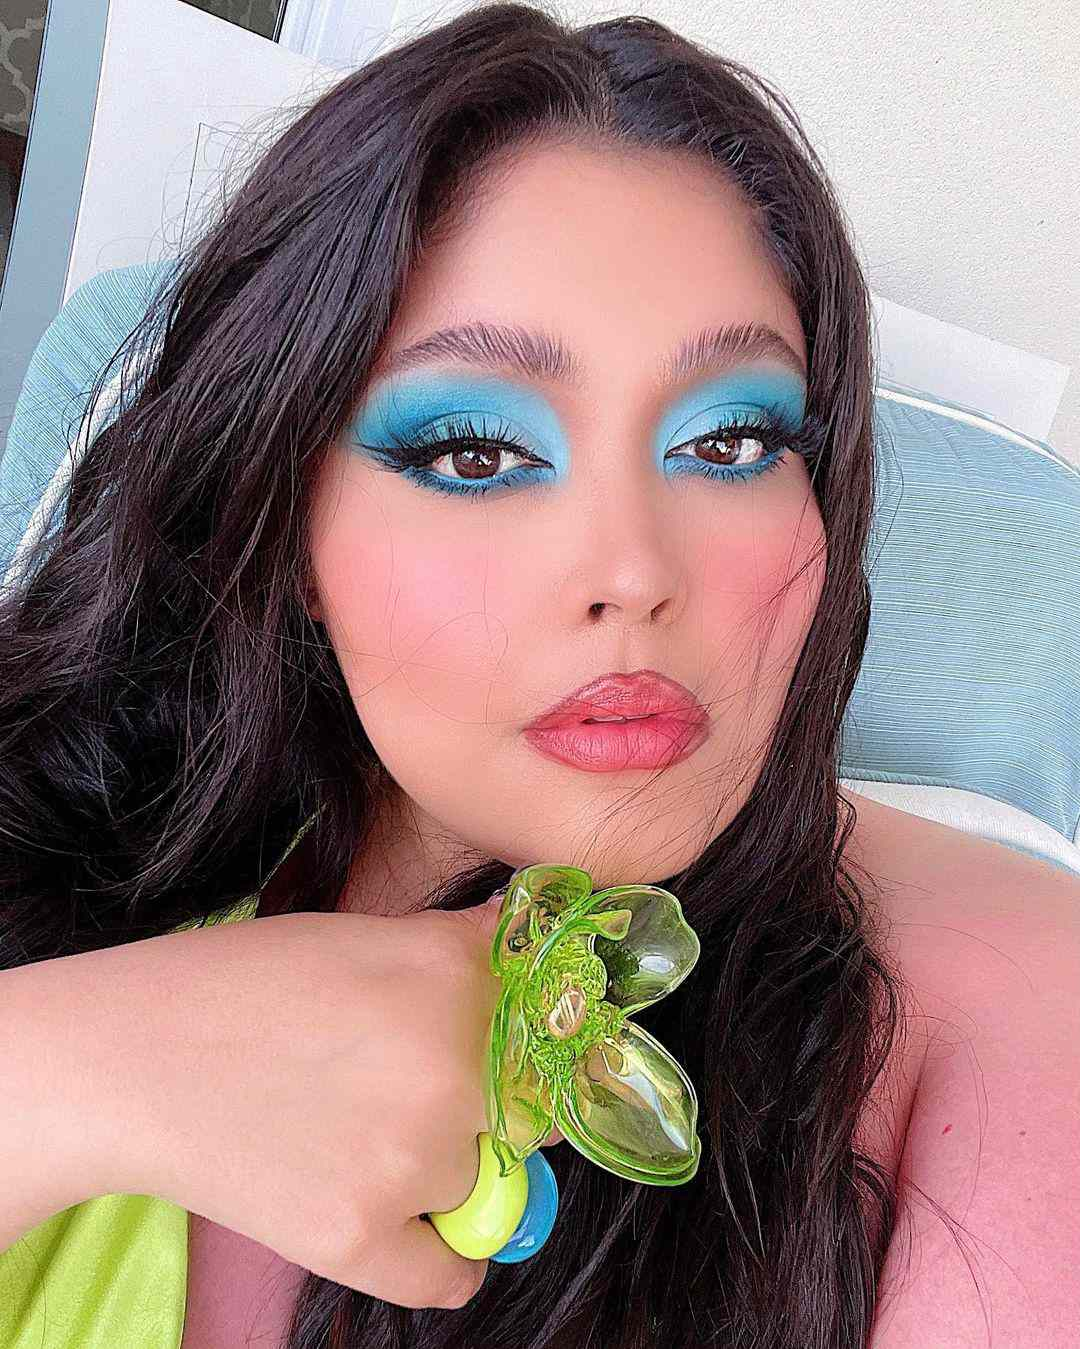 Woman with blue eyeshadow and liner